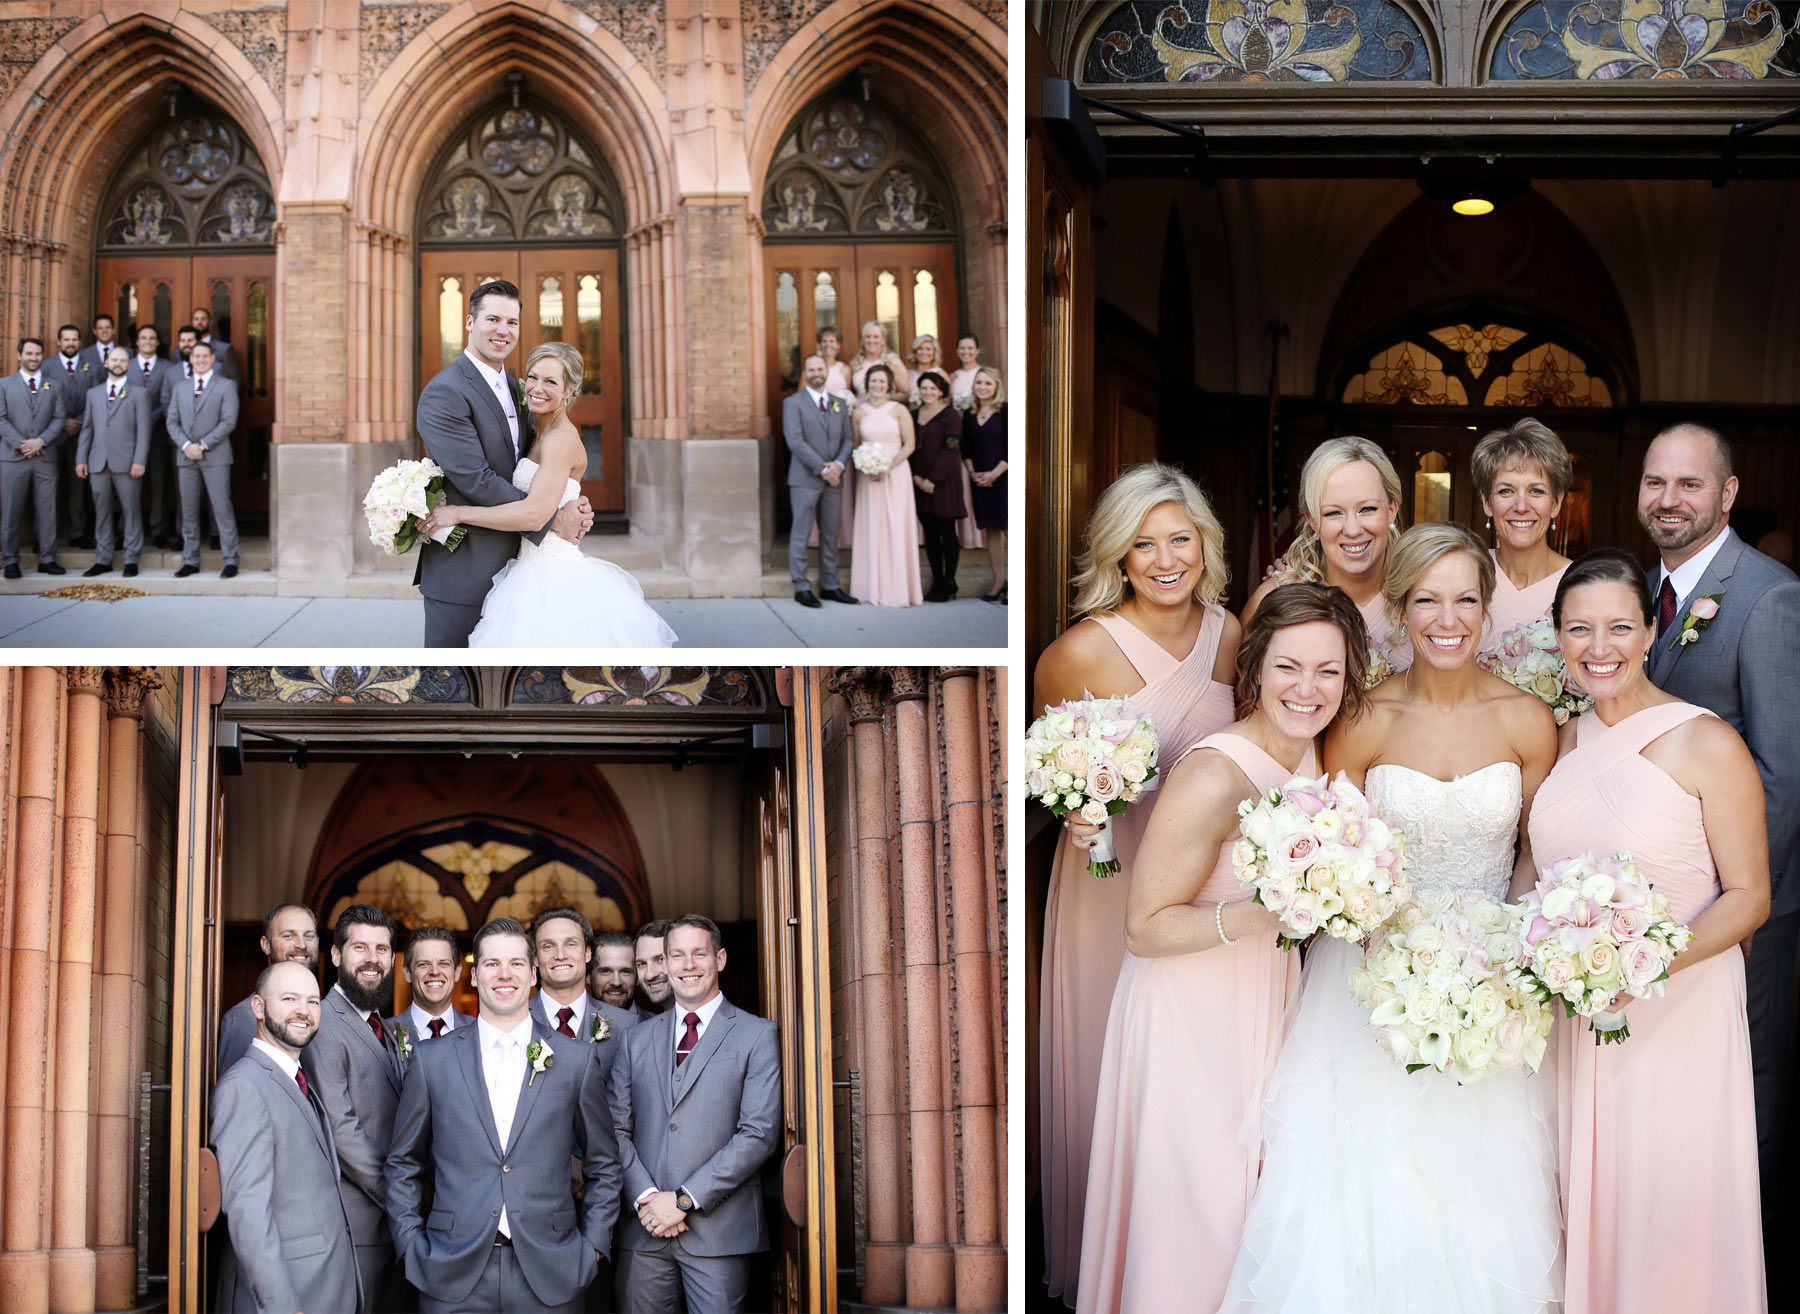 15-Milwaukee-Wisconsin-Wedding-Photographer-by-Andrew-Vick-Photography-Fall-Autumn-Destination-Grave-Evangelical-Lutheran-Church-Bride-Groom-Bridal-Party-Groomsmen-Bridesmaids-Flowers-Tina-and-Kevin.jpg